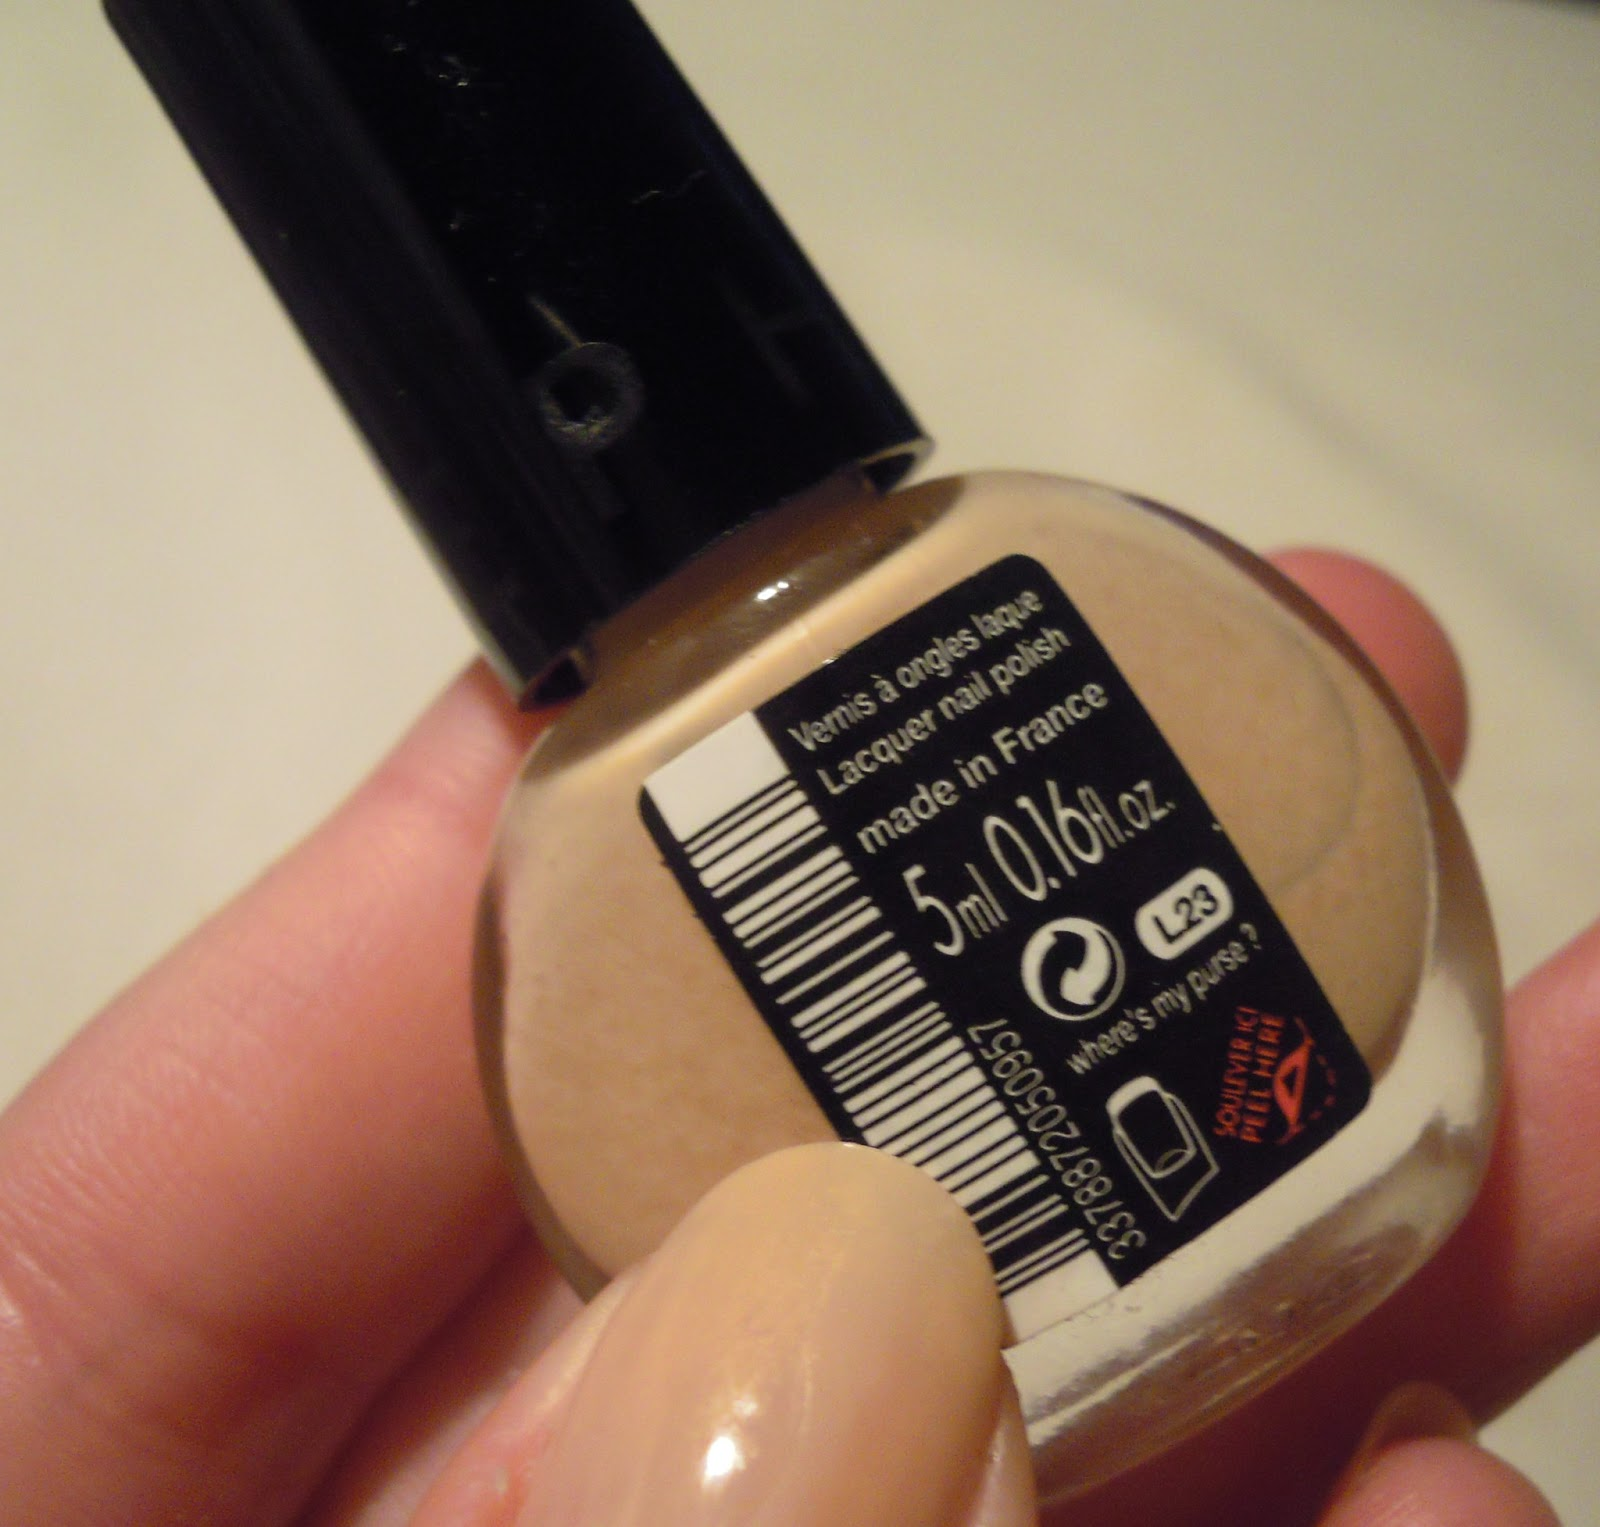 Sephora nail varnish bottle where's my purse?